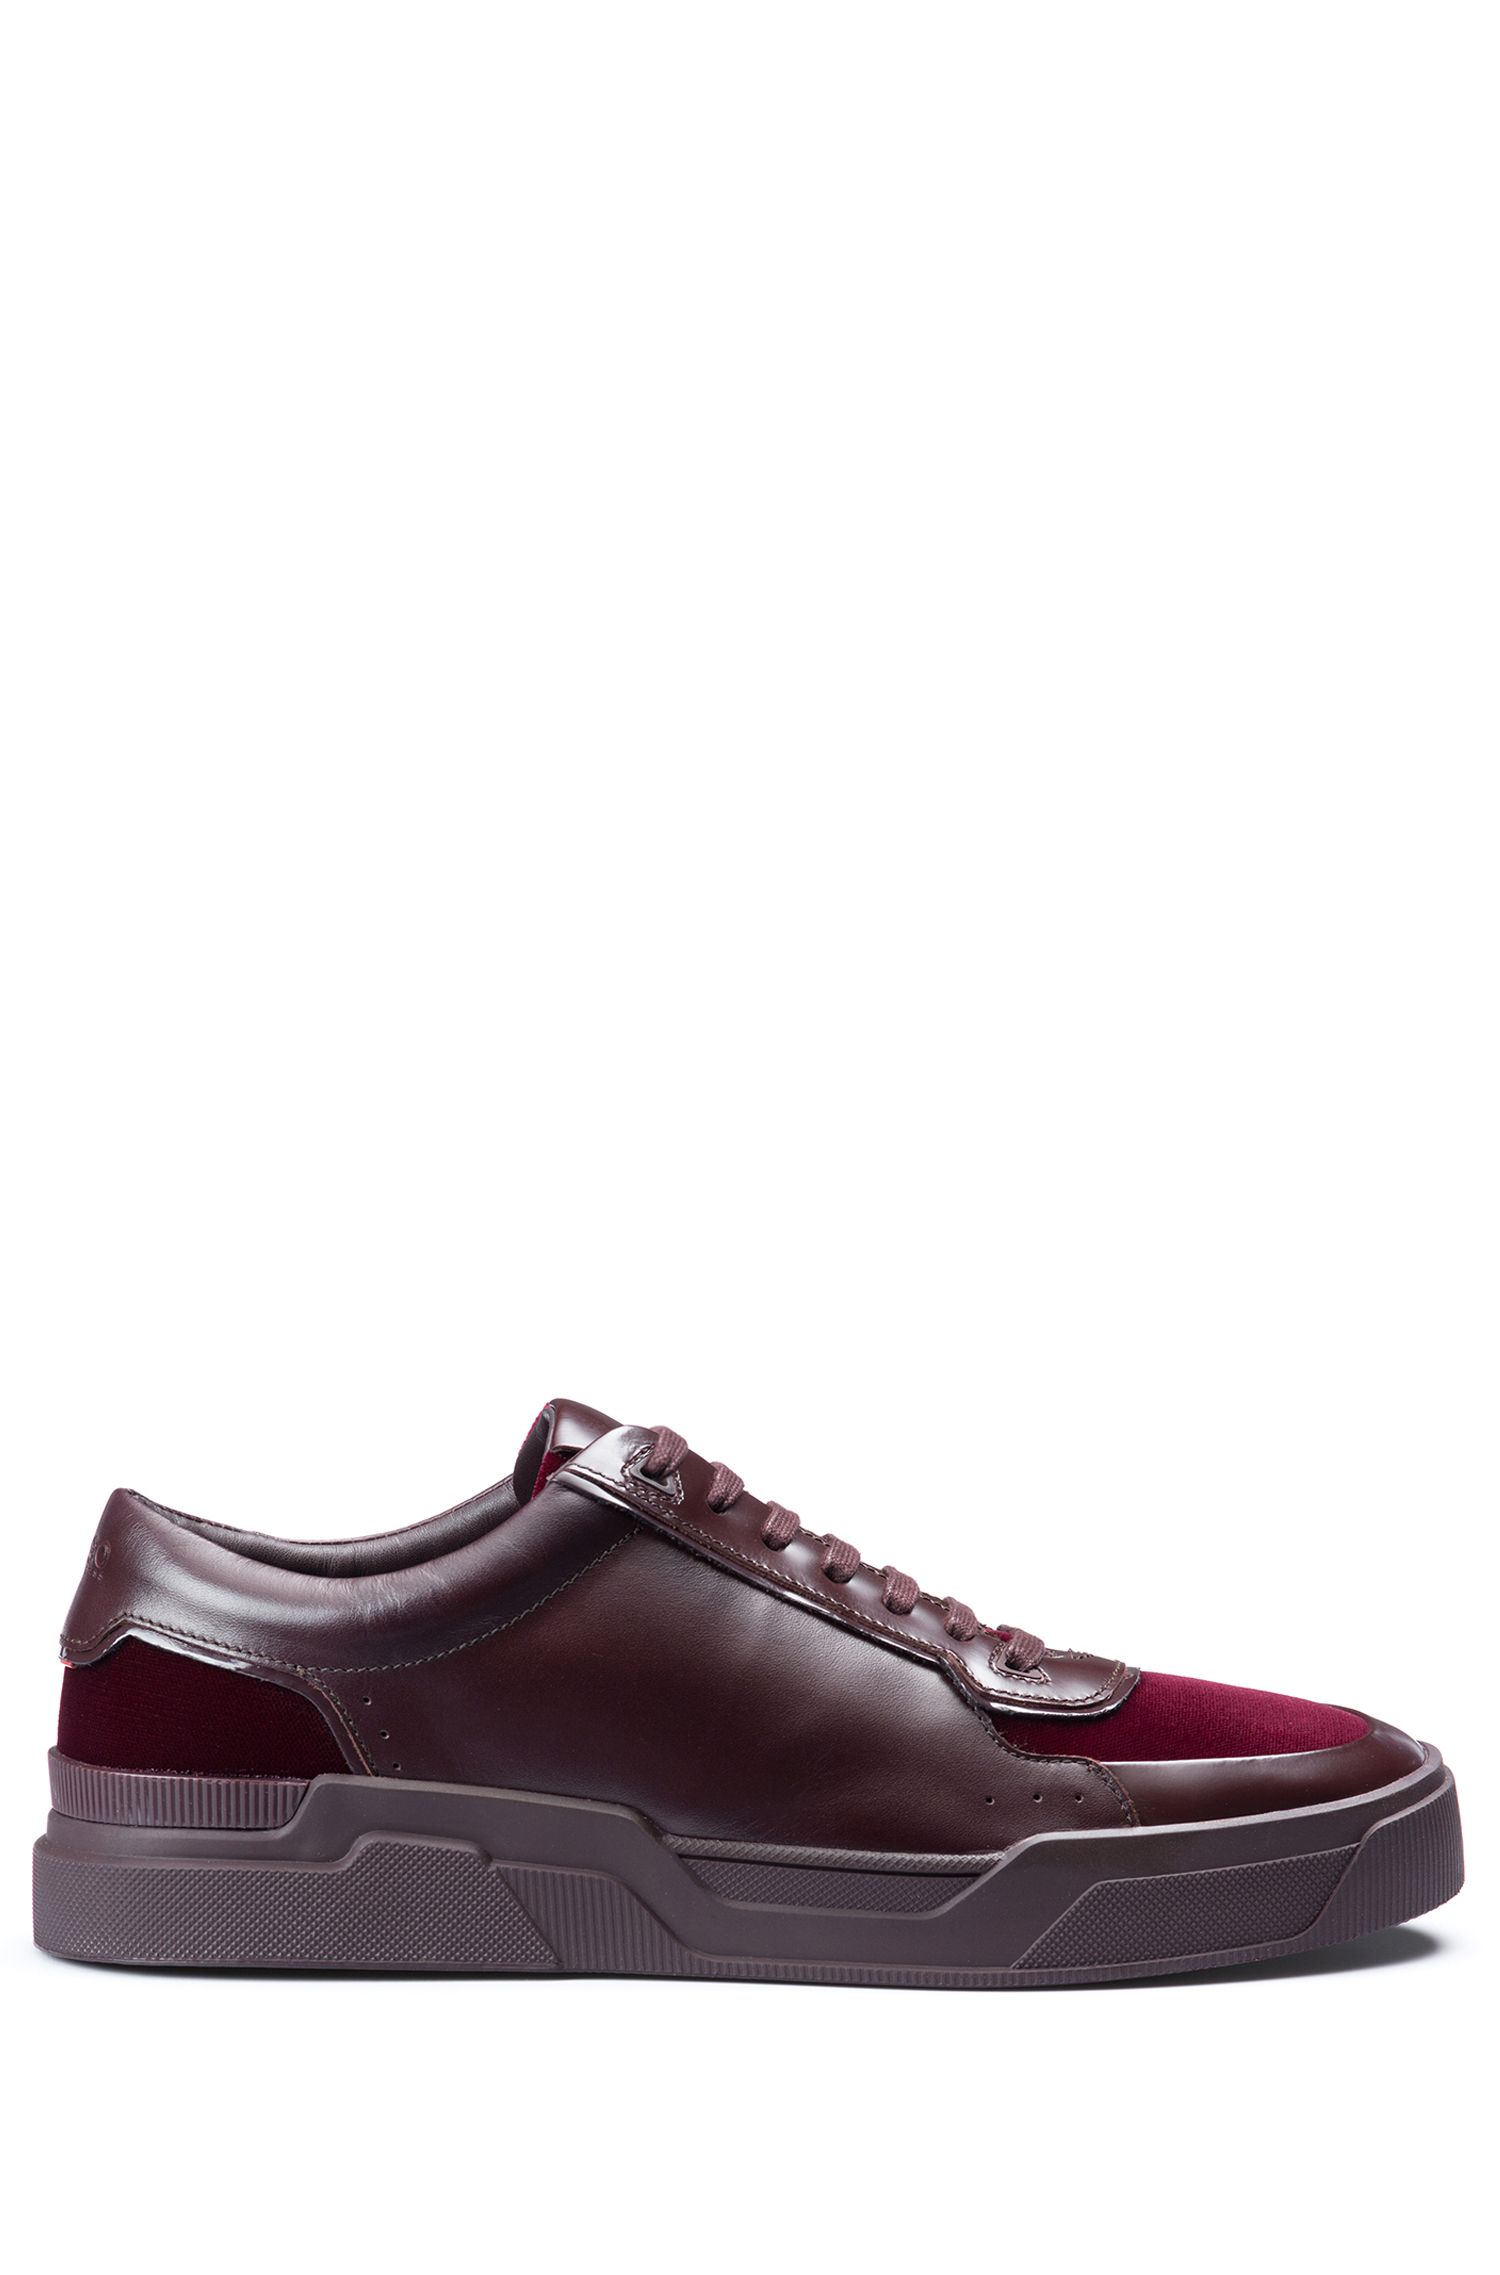 Low-top lace-up trainers in velvet and nappa leather